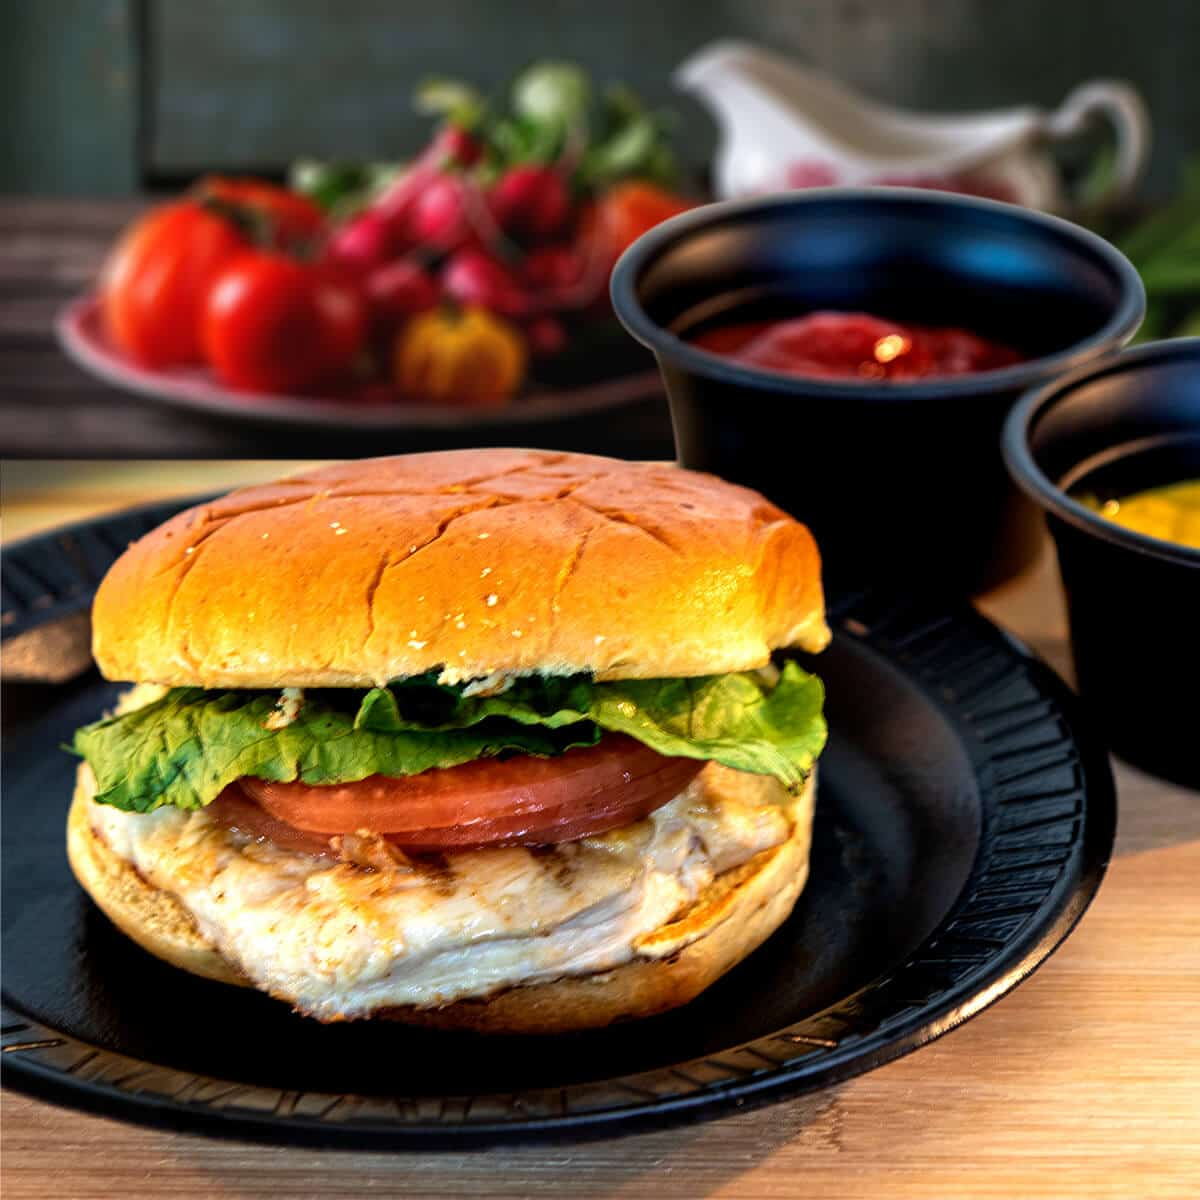 Chicken breast on a bun with tomatoes ad lettuce